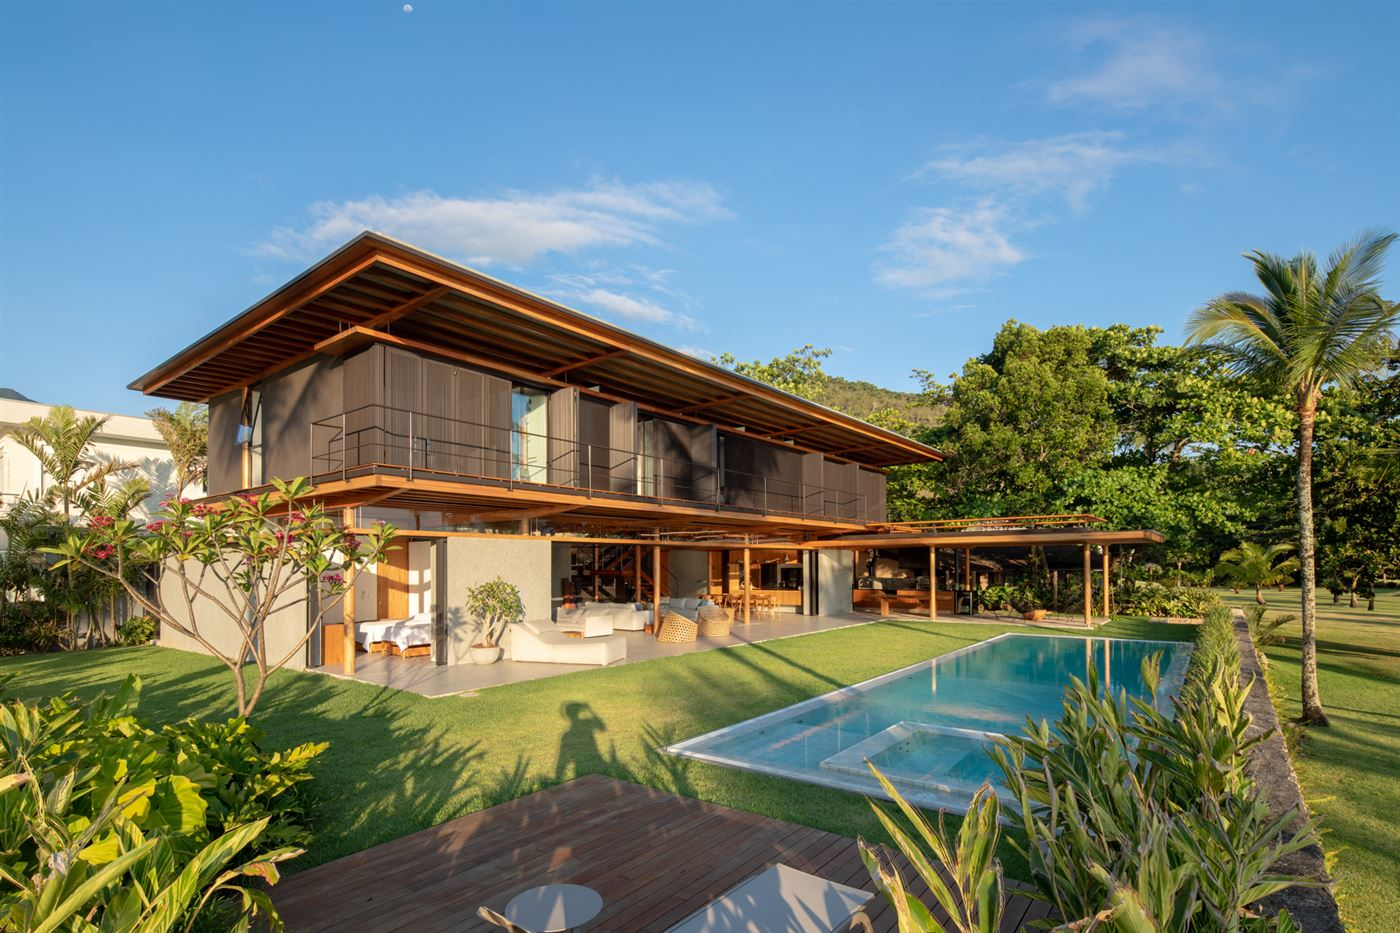 Wood house with pool, exterior design